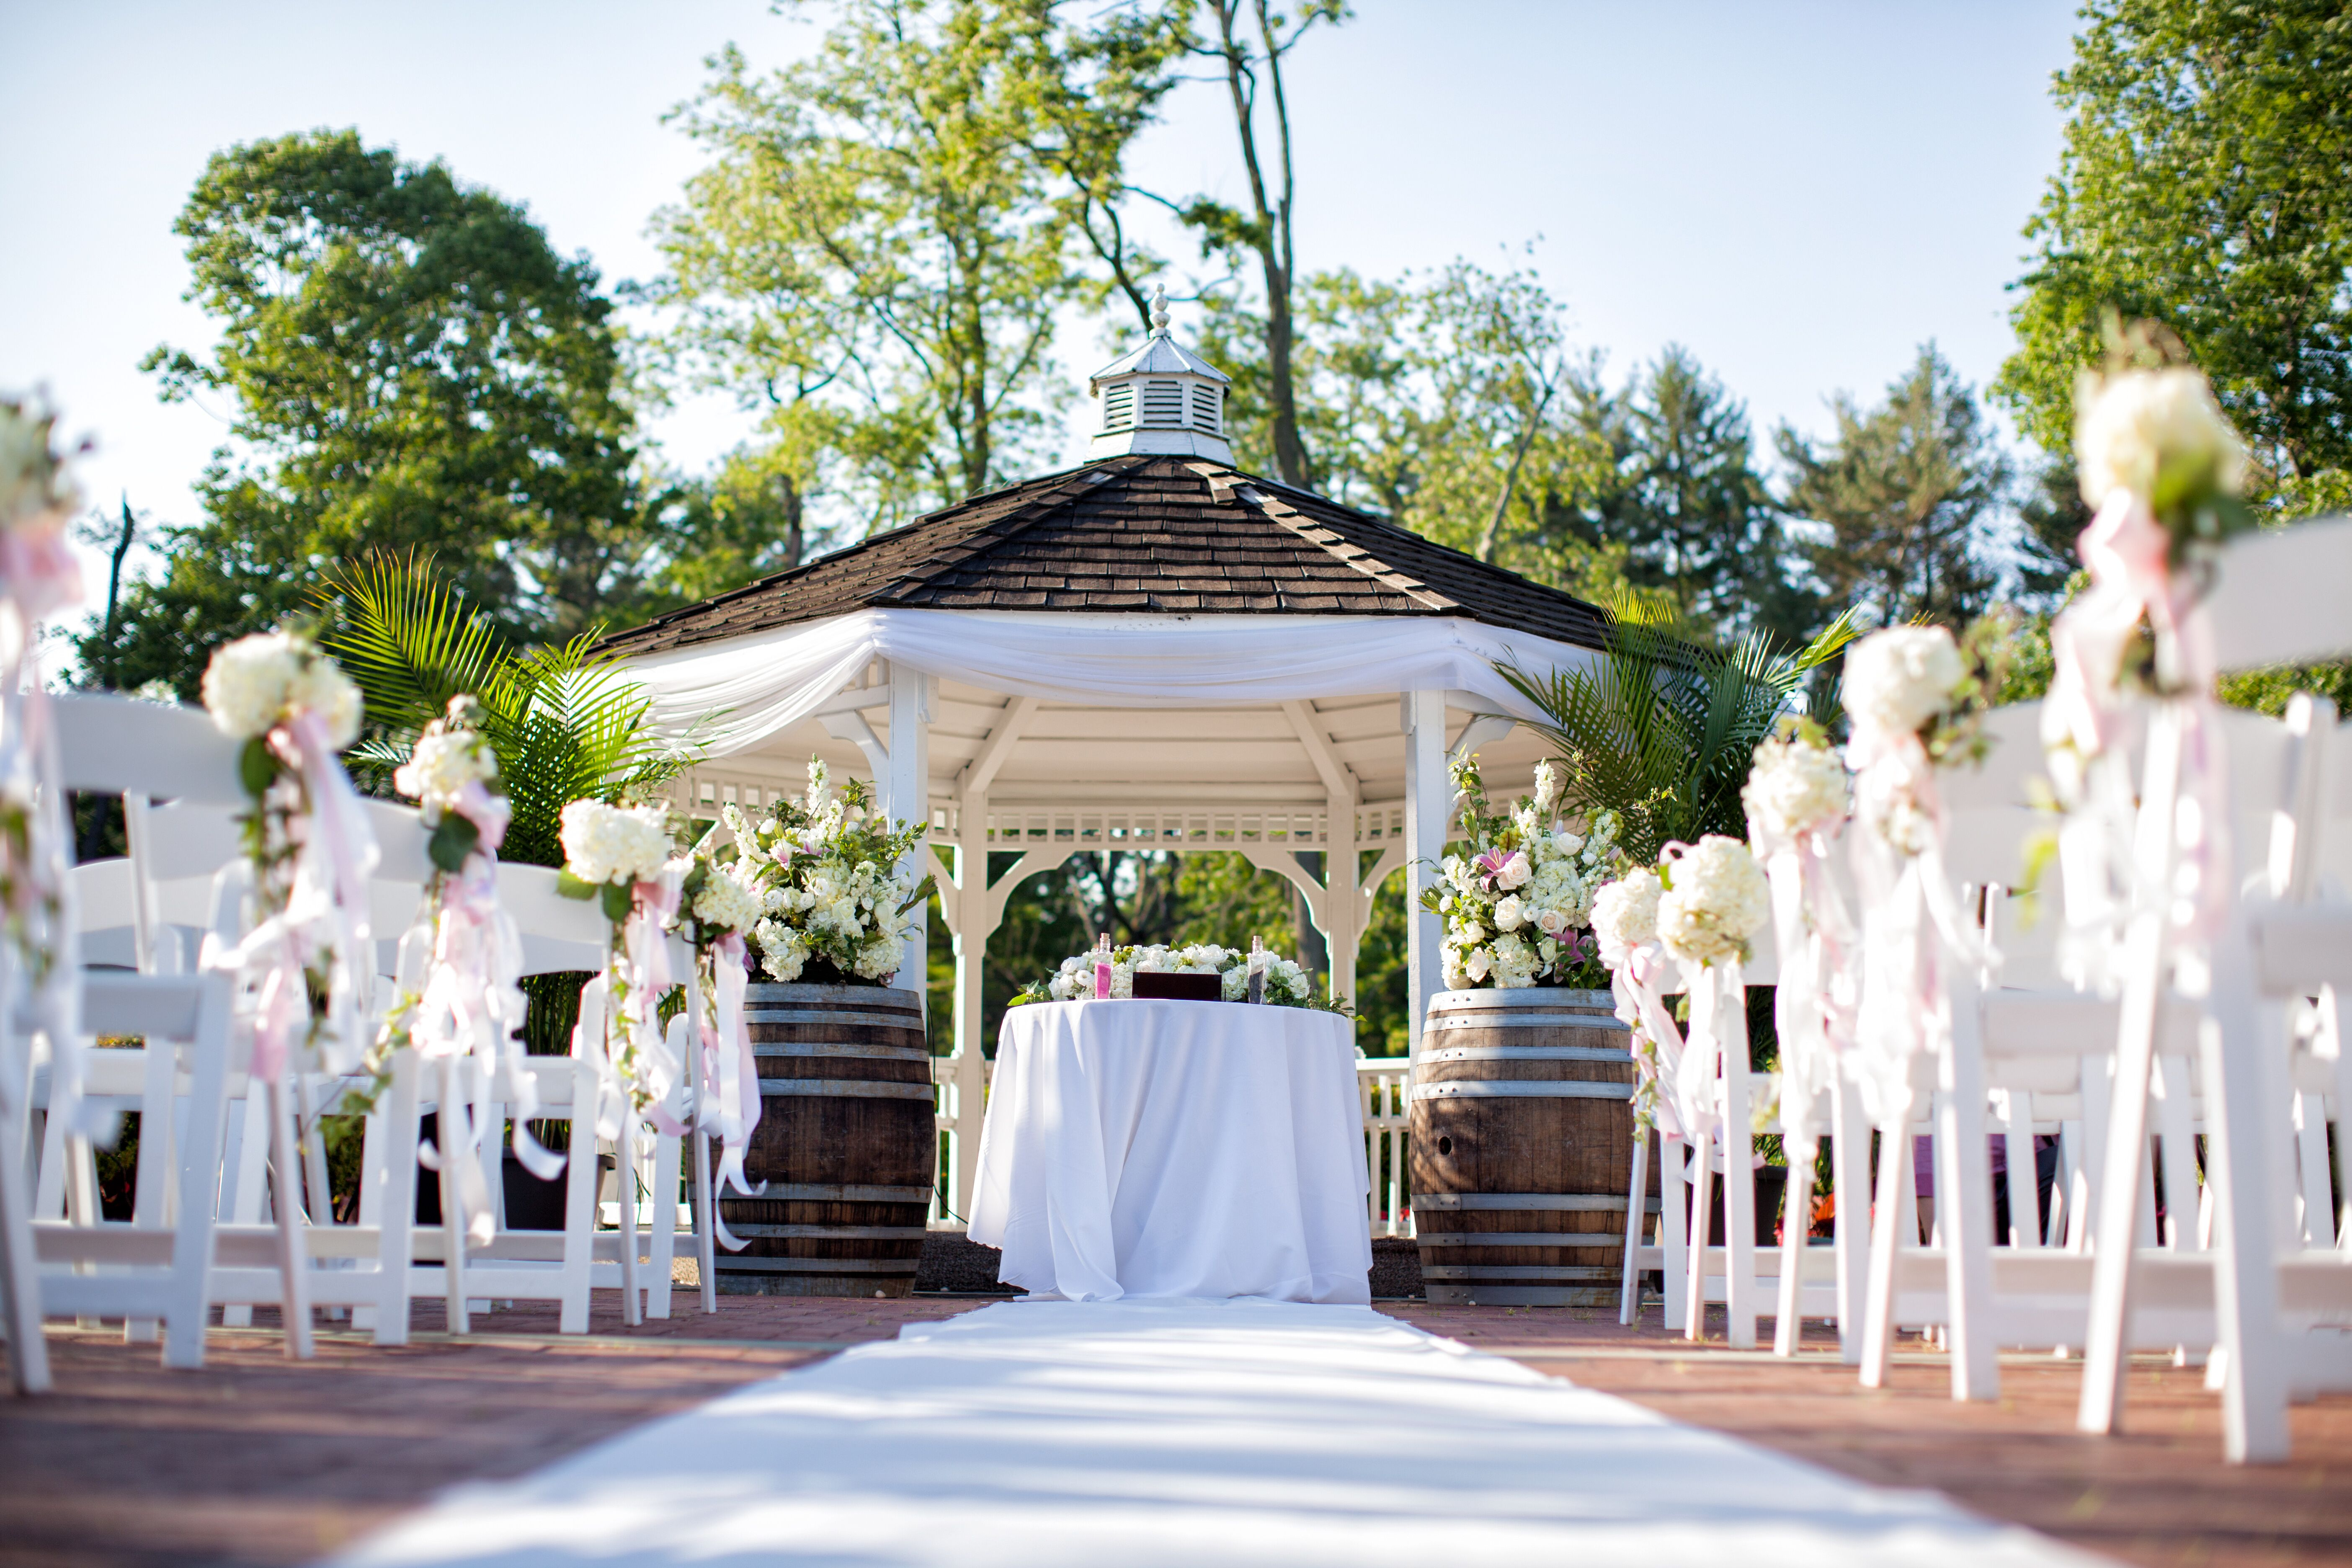 Gazebo Wedding Invitations: Outdoor Gazebo Wedding Ceremony